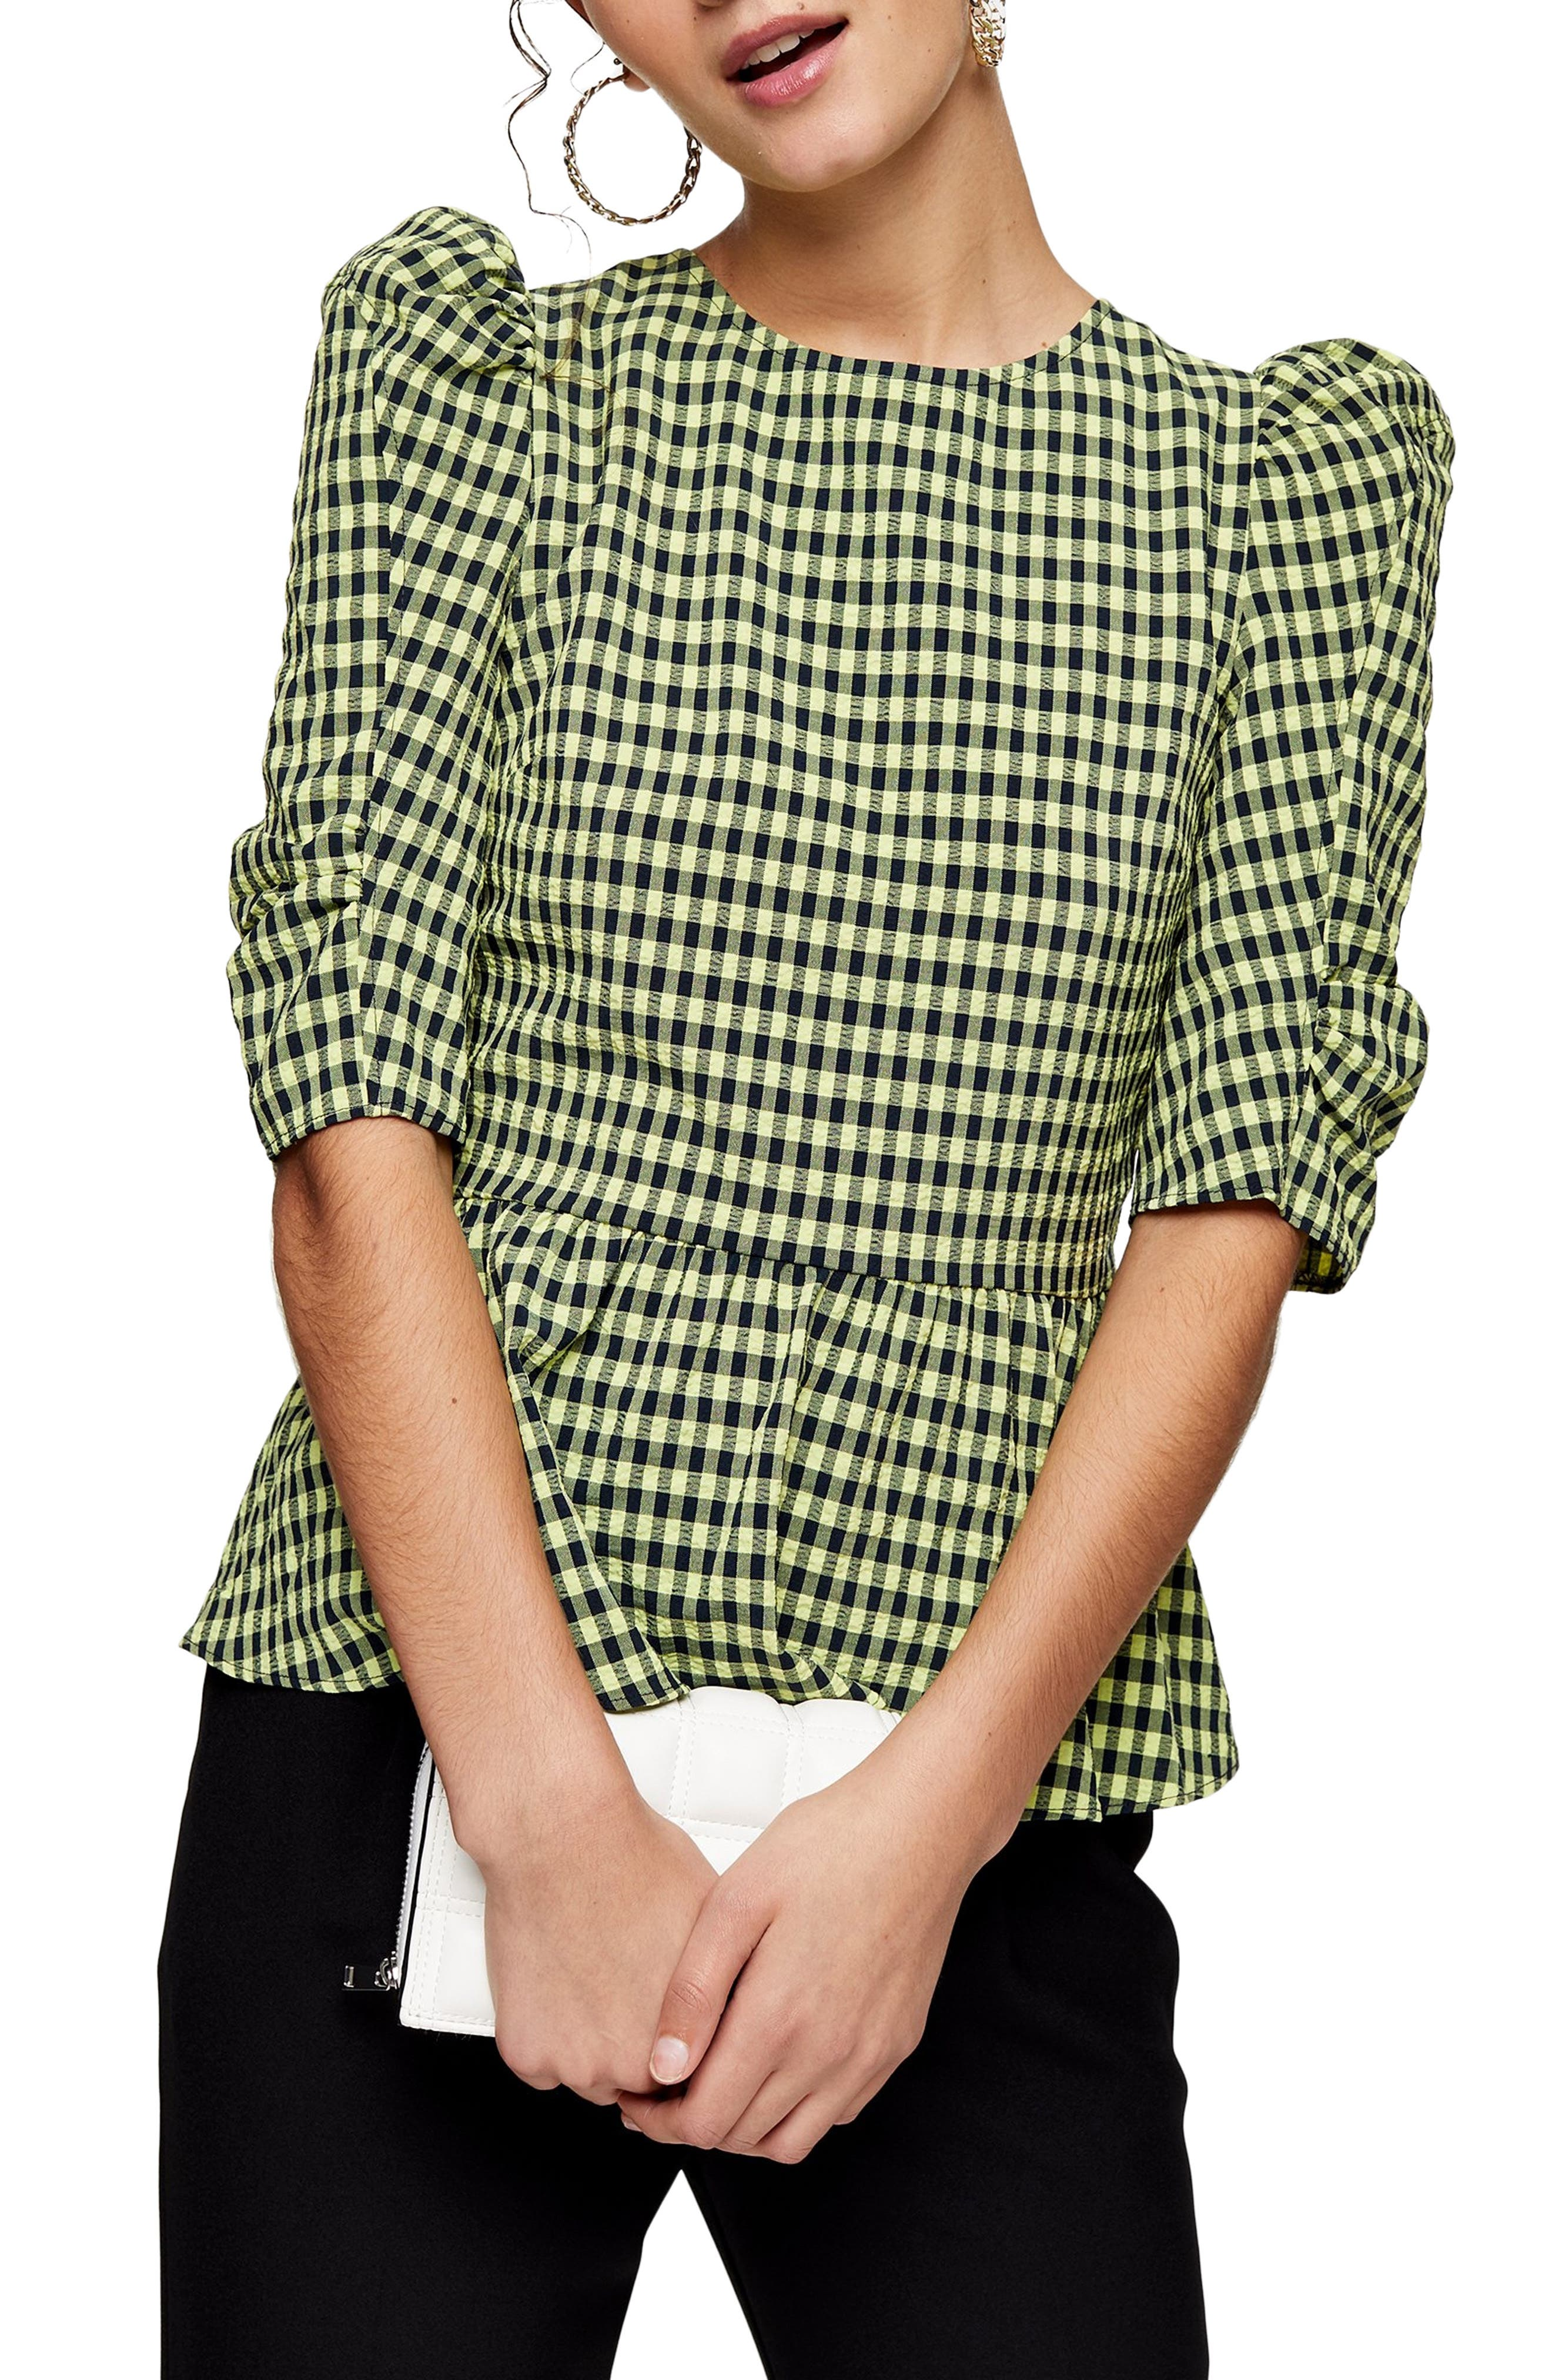 Corset-inspired back lacing adds an alluring finish to a retro-chic gingham blouse fashioned with puffed elbow-length sleeves. Style Name: Topshop Gingham Blouse. Style Number: 6091752. Available in stores.